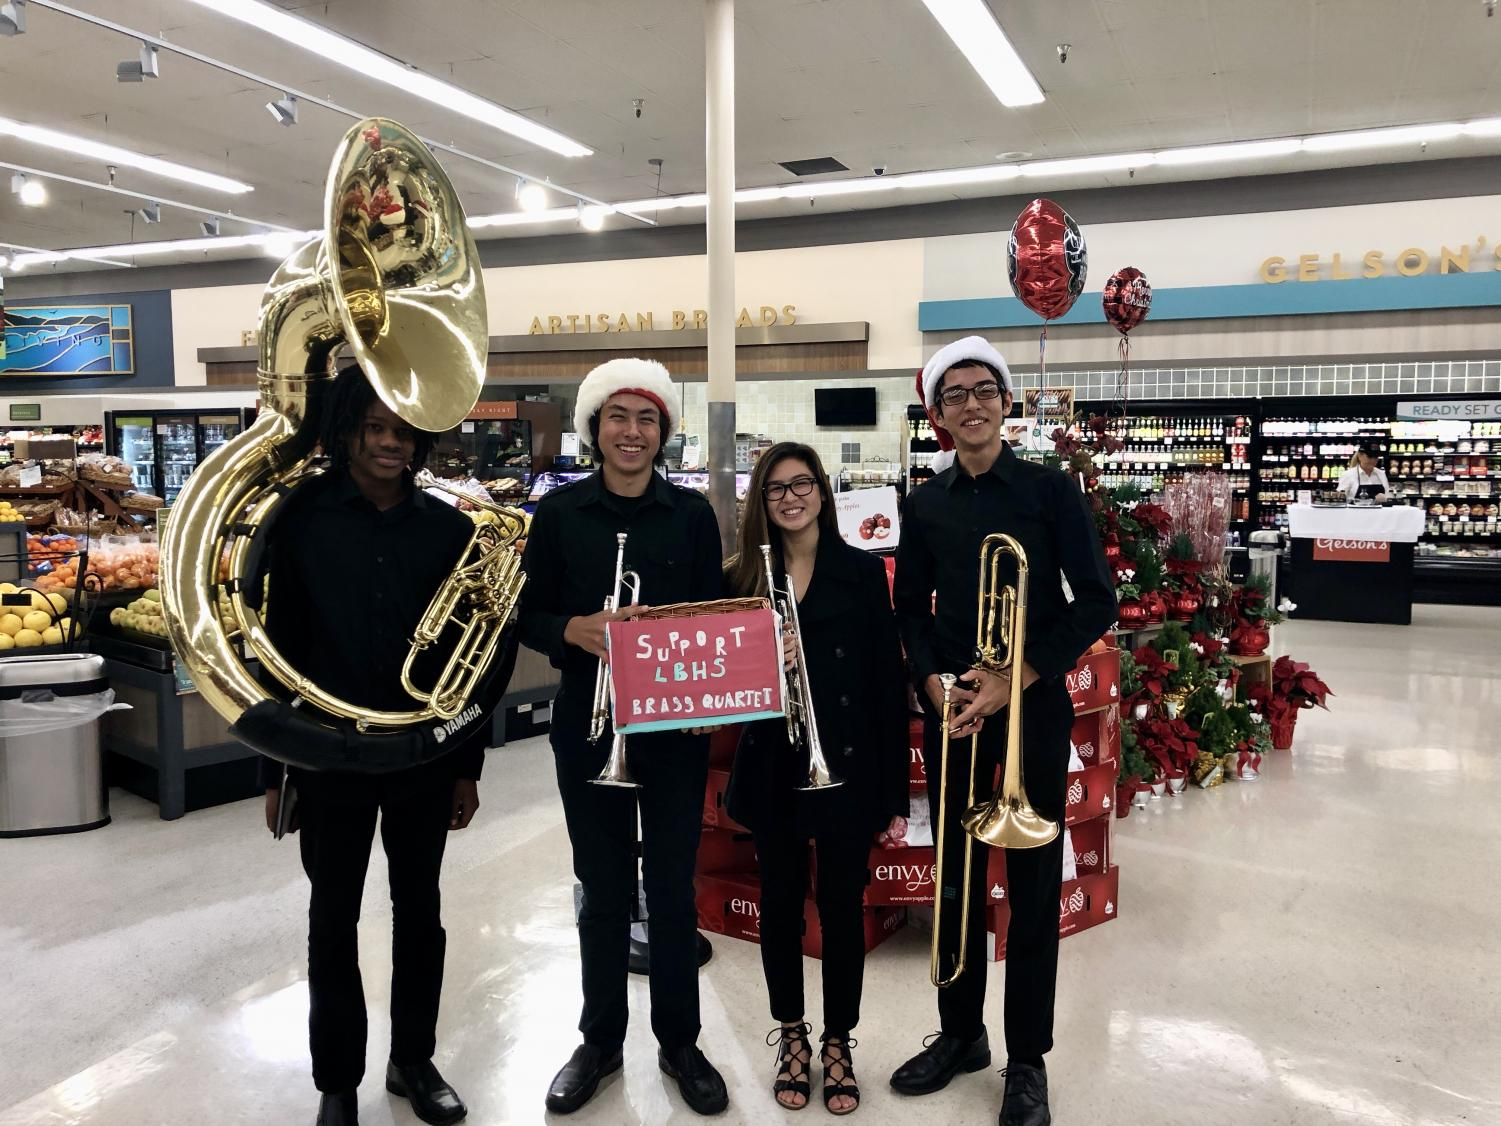 The brass quartet -  Zachary Duncan, sousaphone; Mason Lebby, trumpet; Jordan Sitea, trumpet; and Ryan Davison, trombone - takes a breather between songs at Gelson's Market. They have also performed at Hospitality Night, Trader Joe's, and the teachers' annual holiday breakfast.